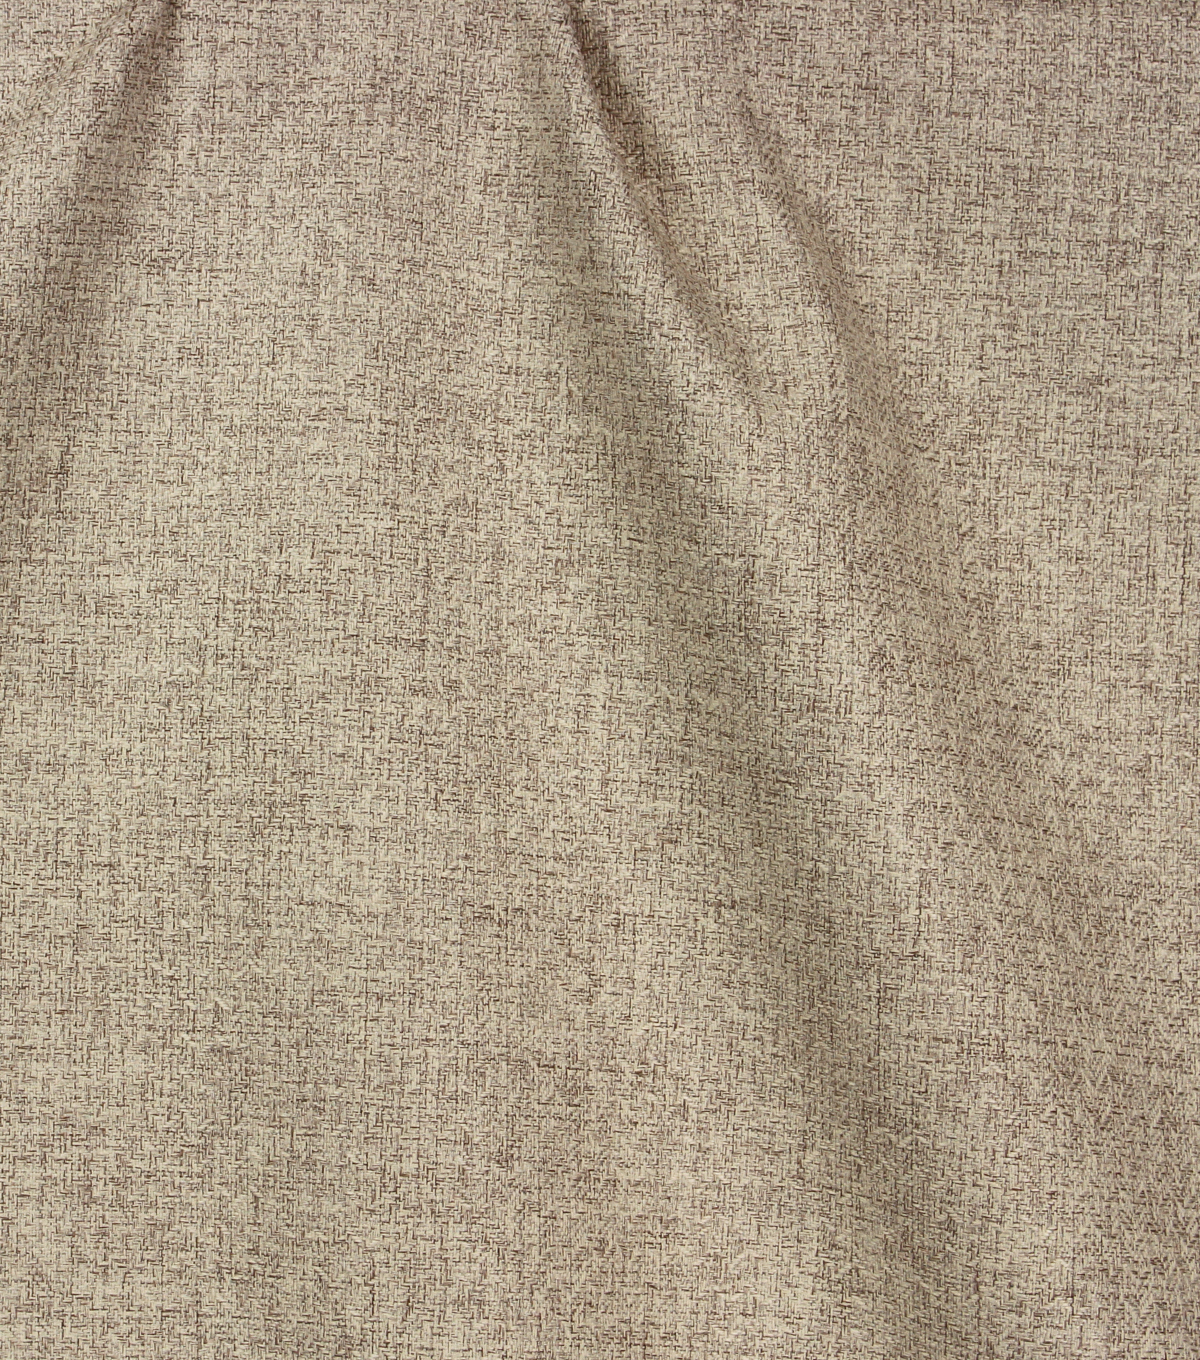 Richloom Studio Multi-Purpose Decor Fabric Fabric 54\u0027\u0027-Korzen Linen